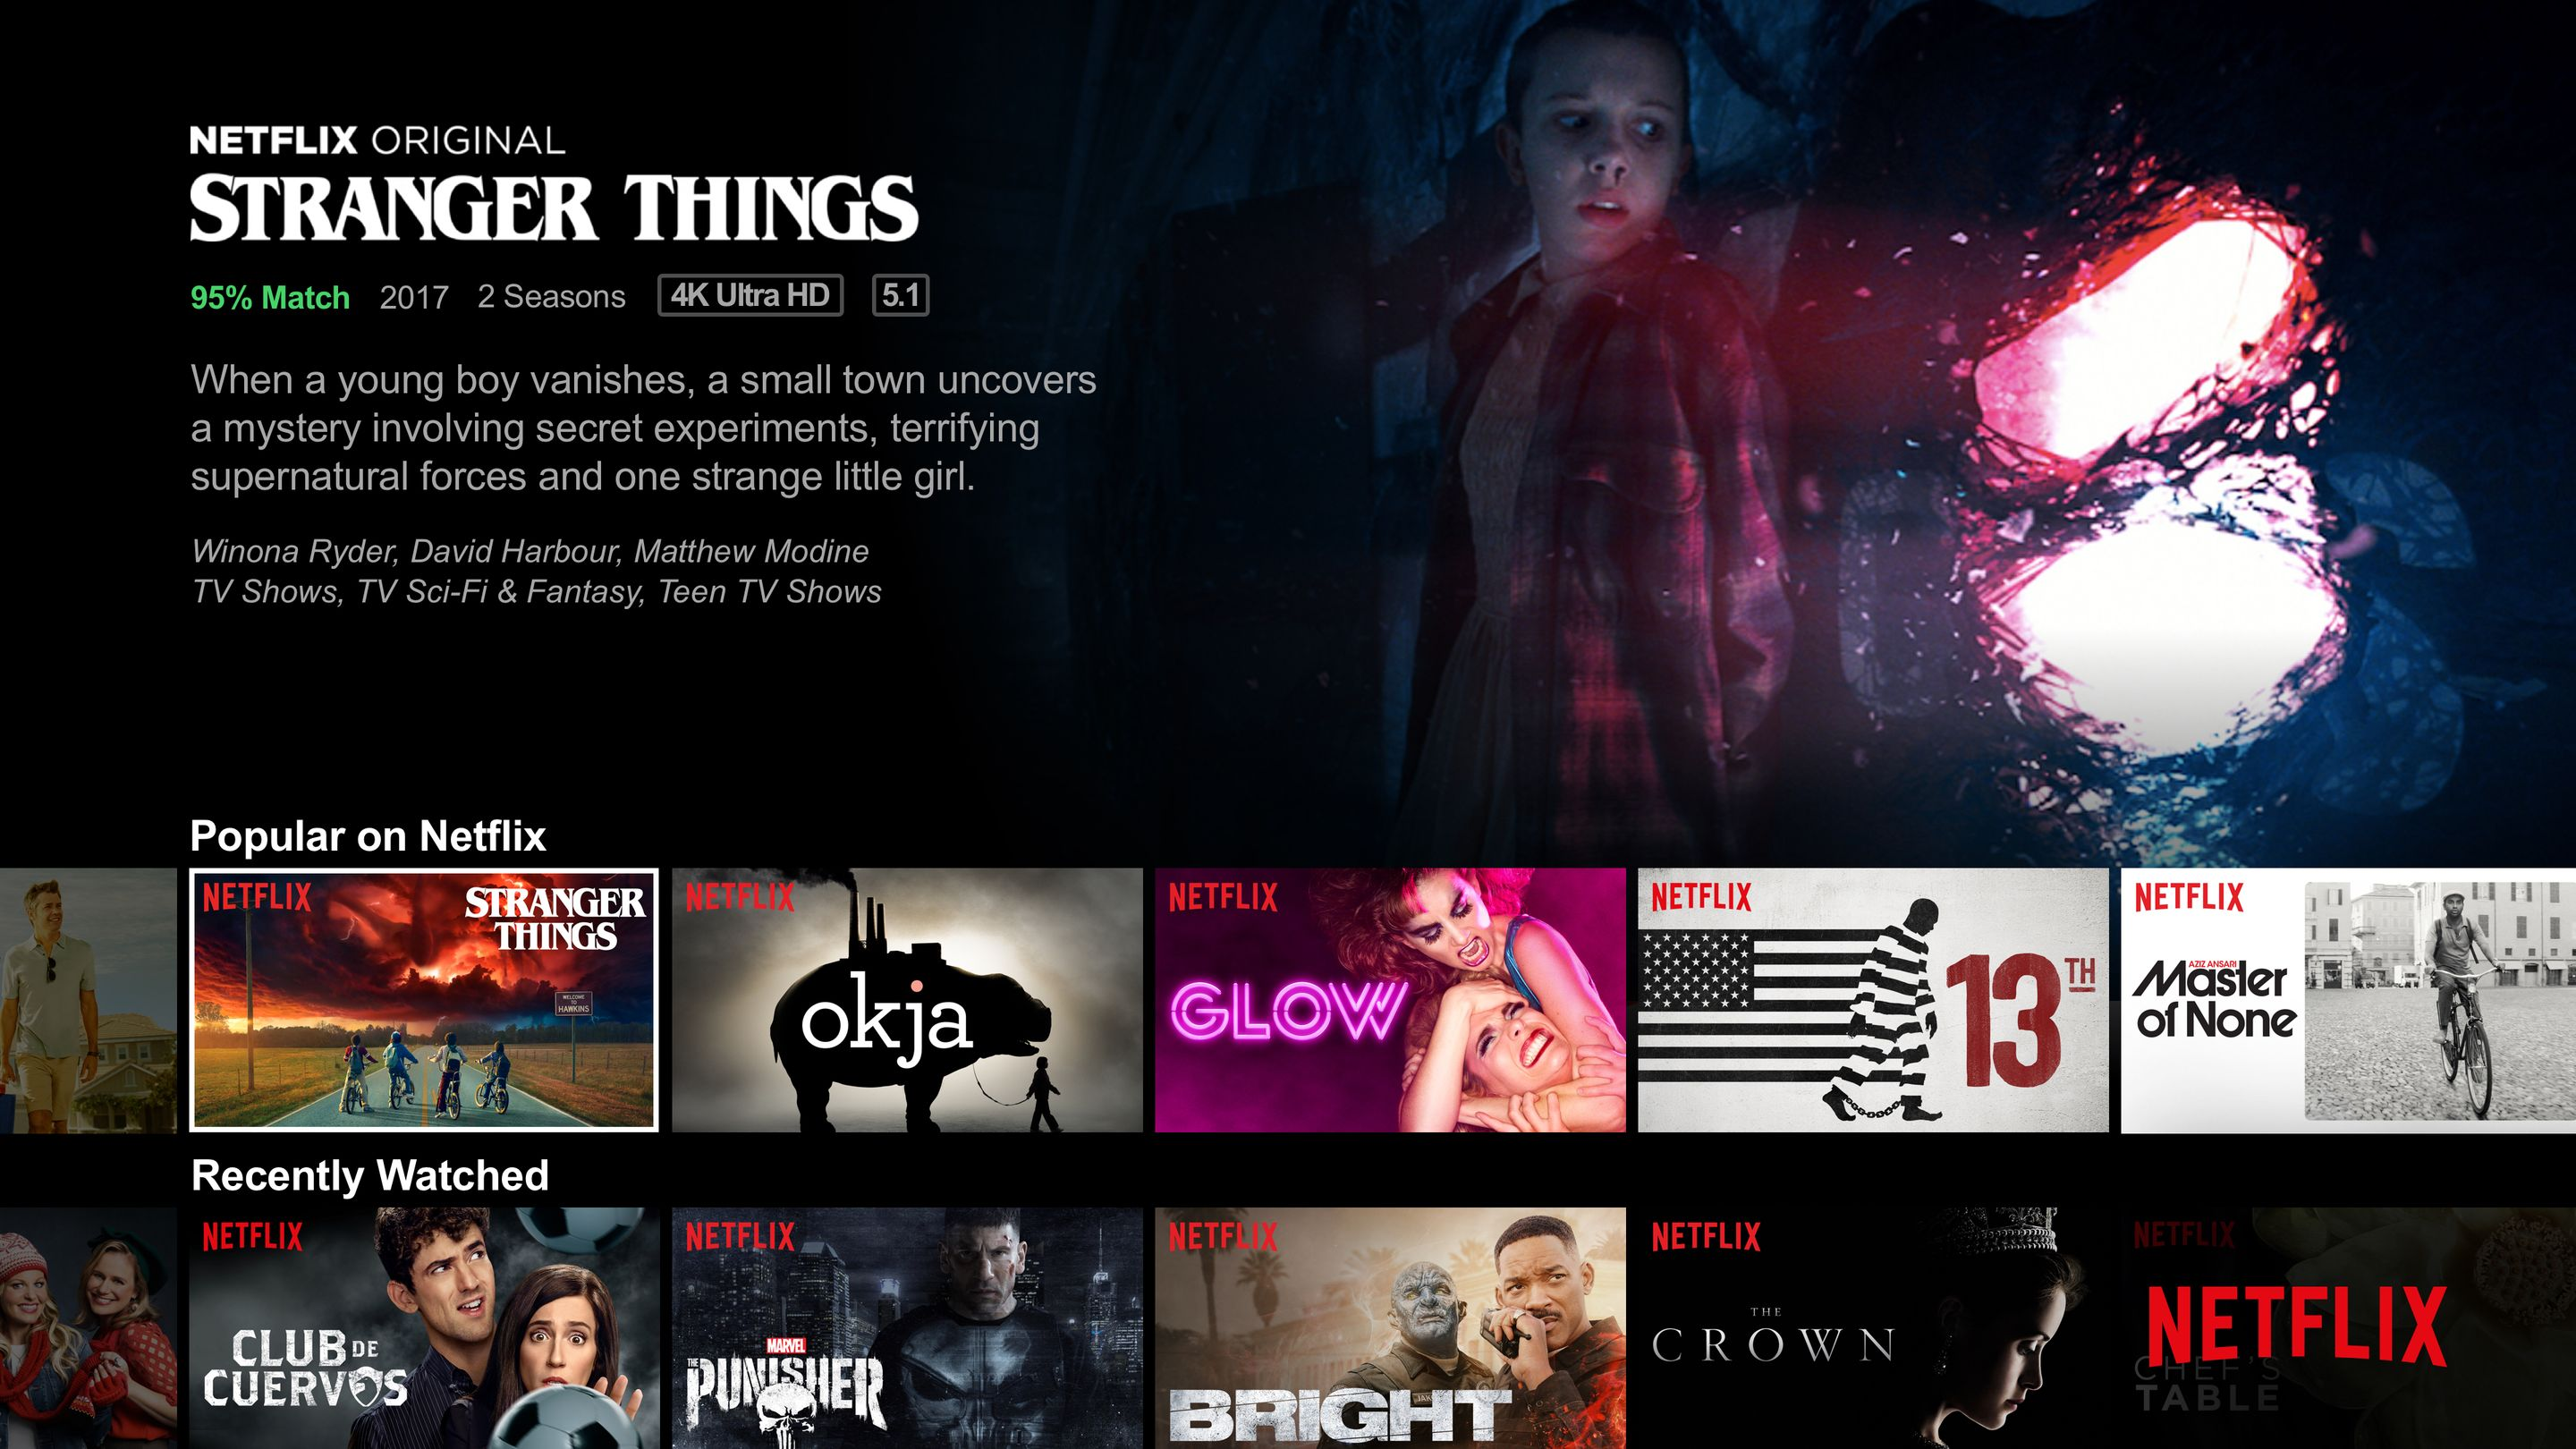 Netflix versus the other streaming sites: Netflix